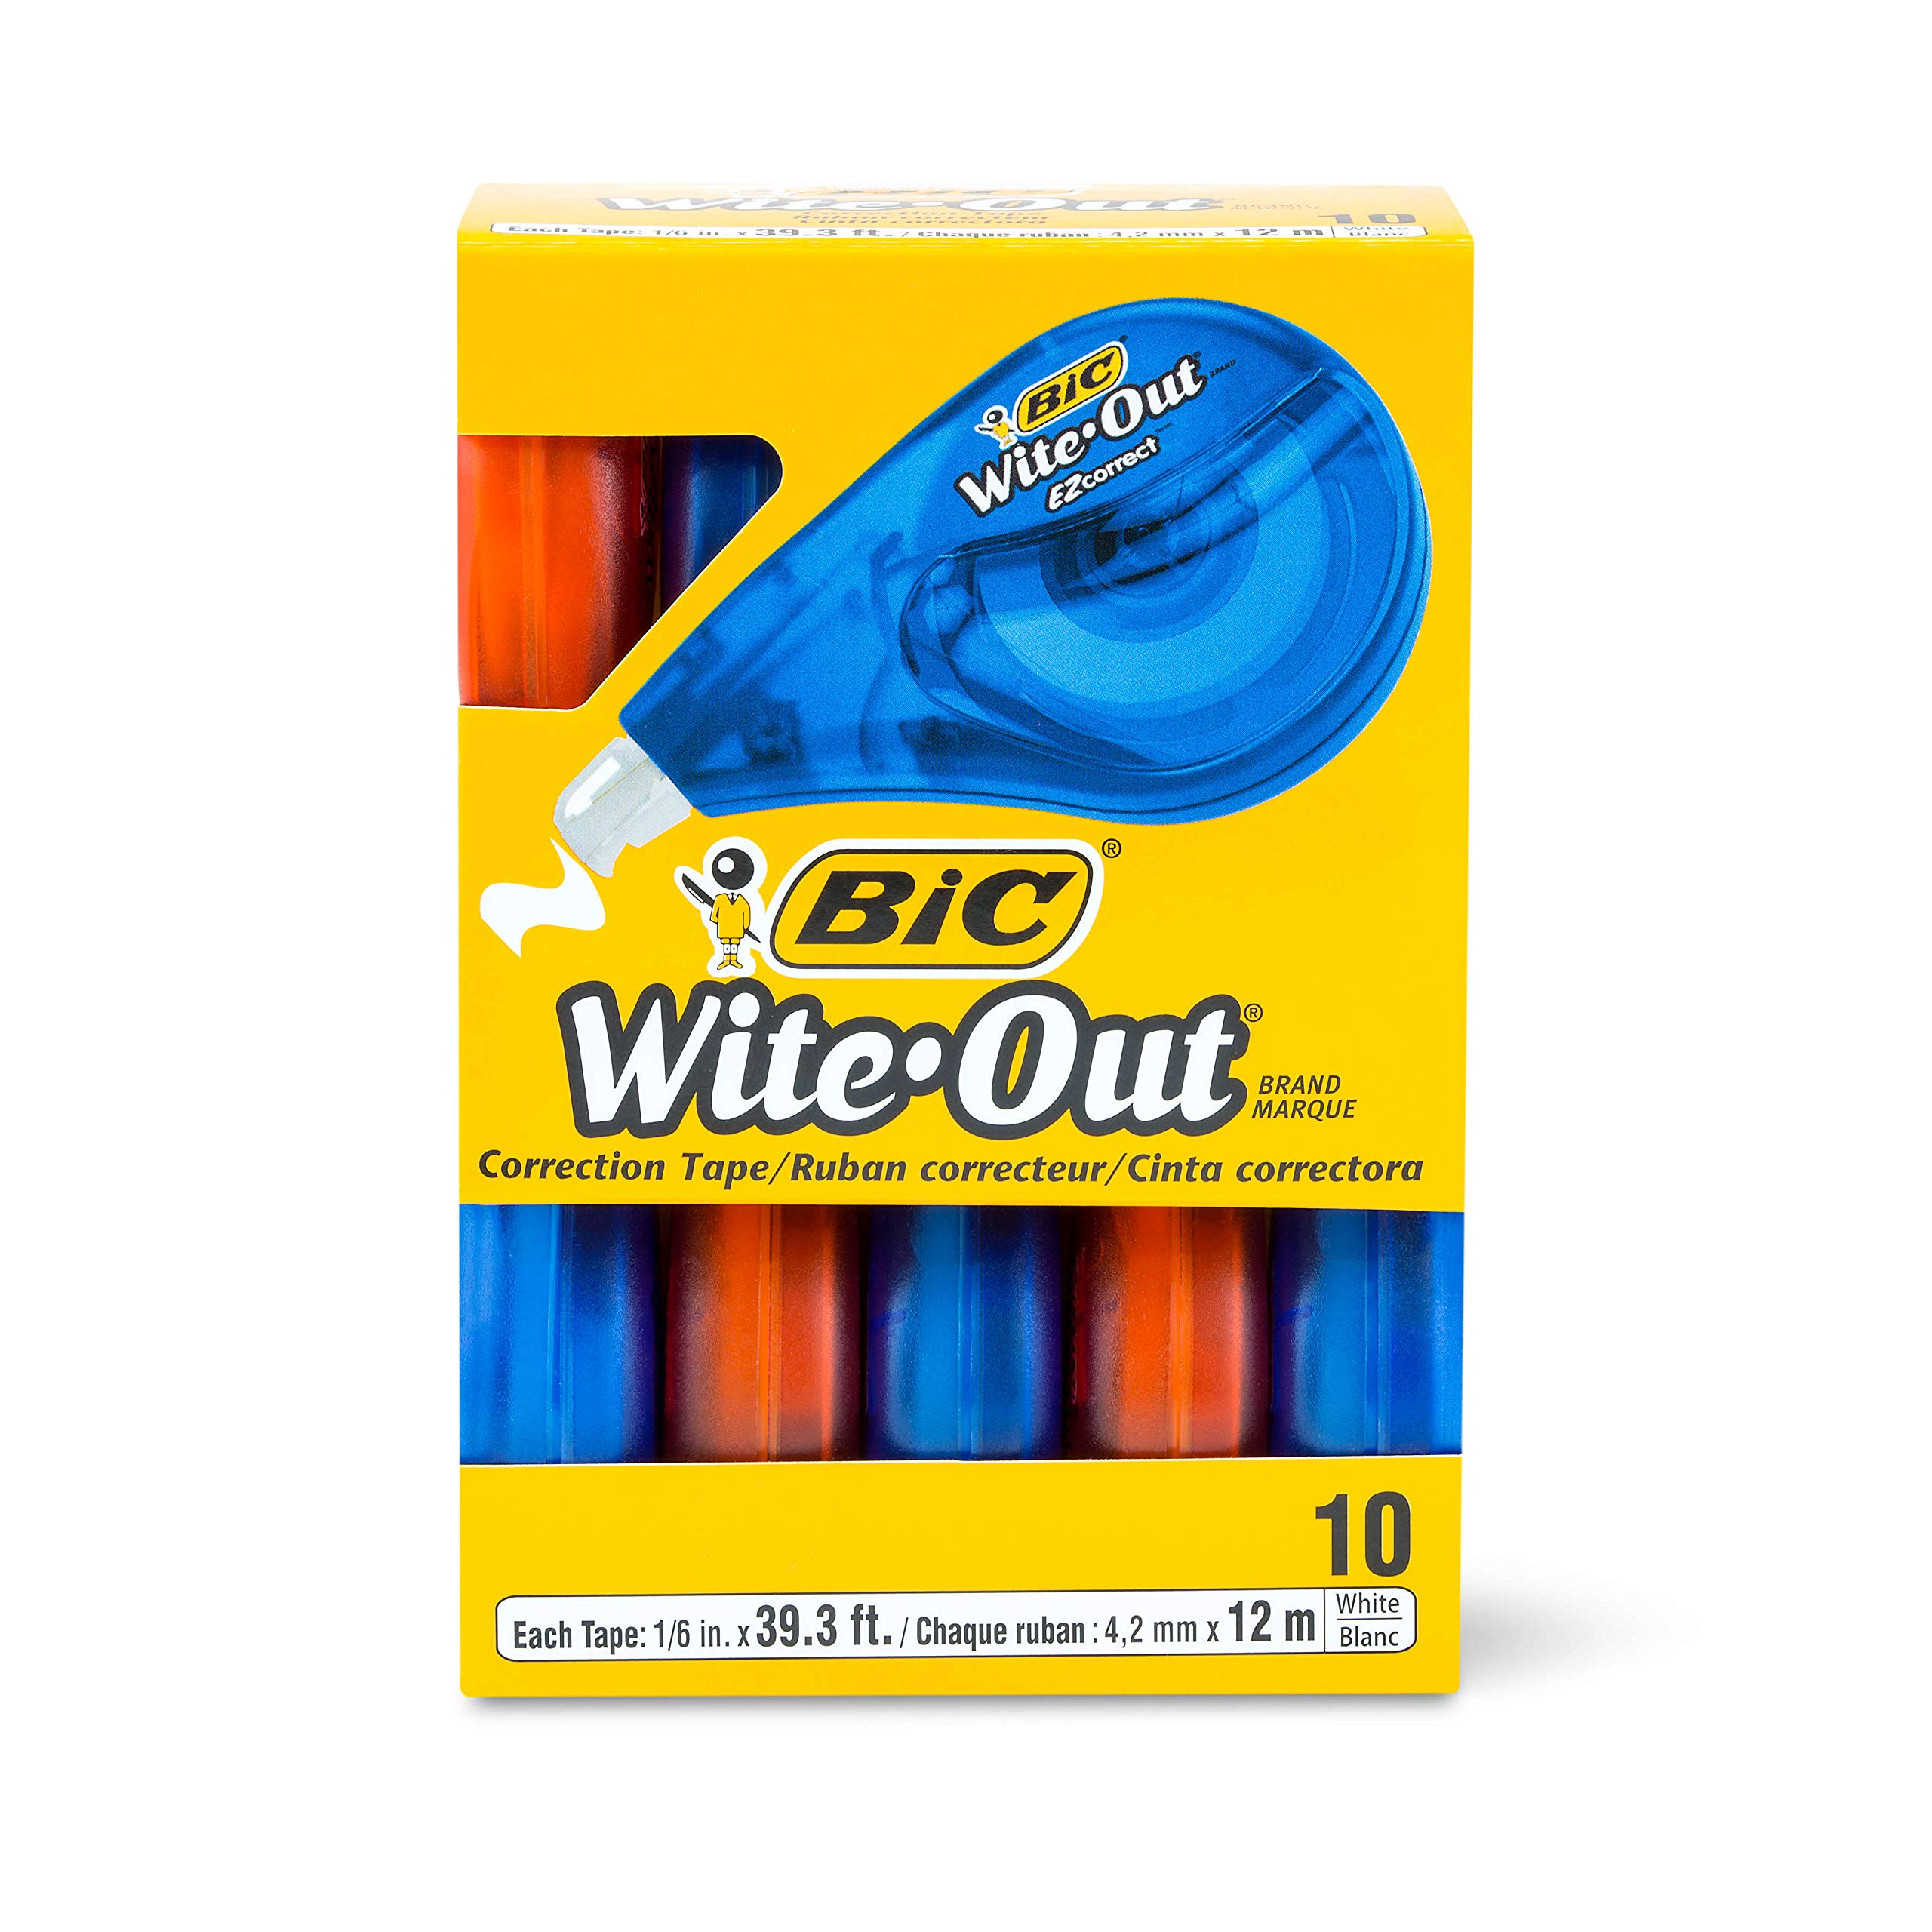 BIC Wite-Out Brand EZ Correct Correction Tape, 10-Count, White (6 Pack)